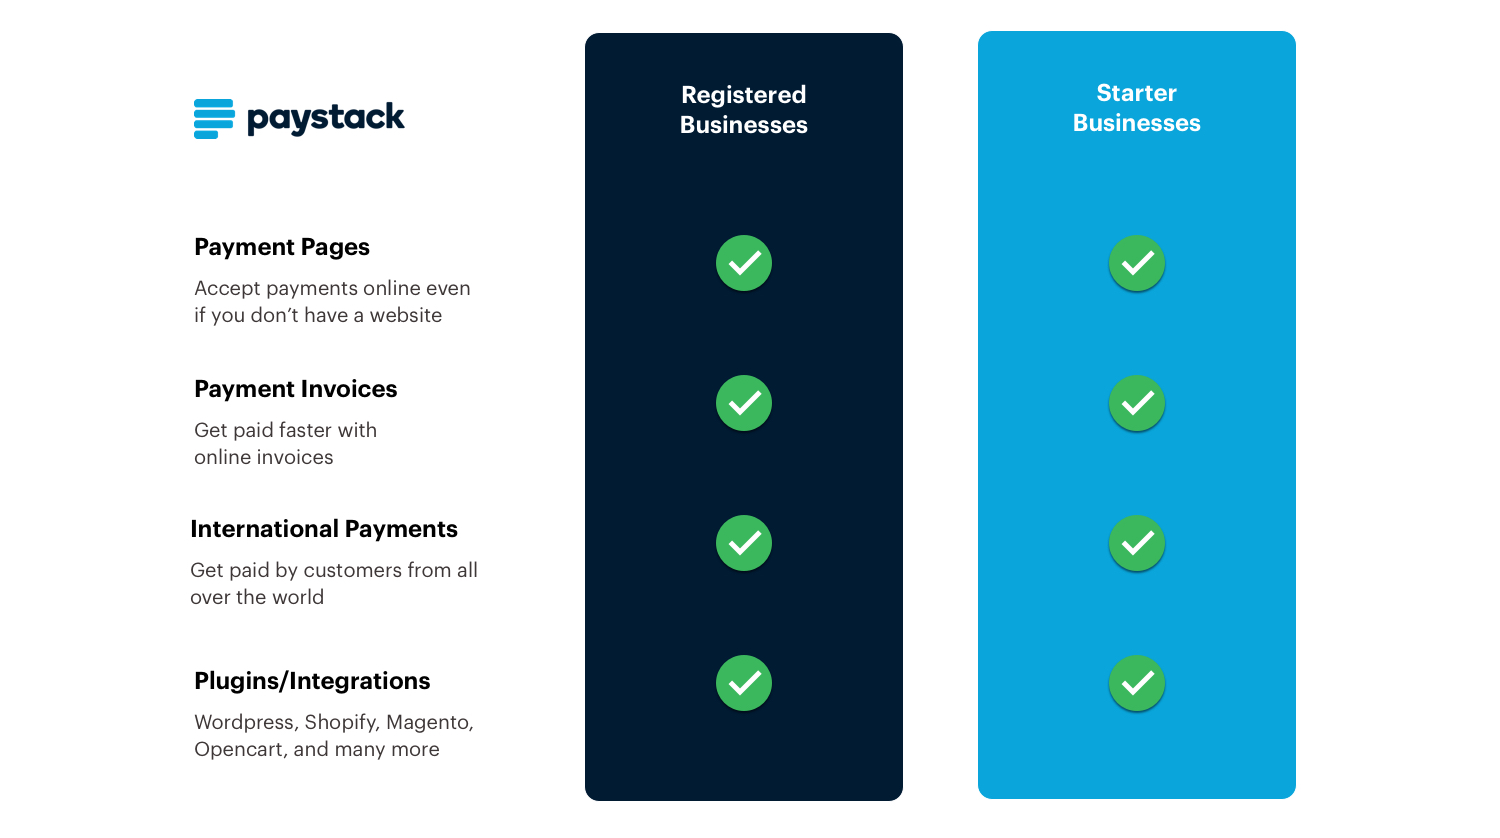 Introducing Paystack Starter Businesses - The Paystack Blog